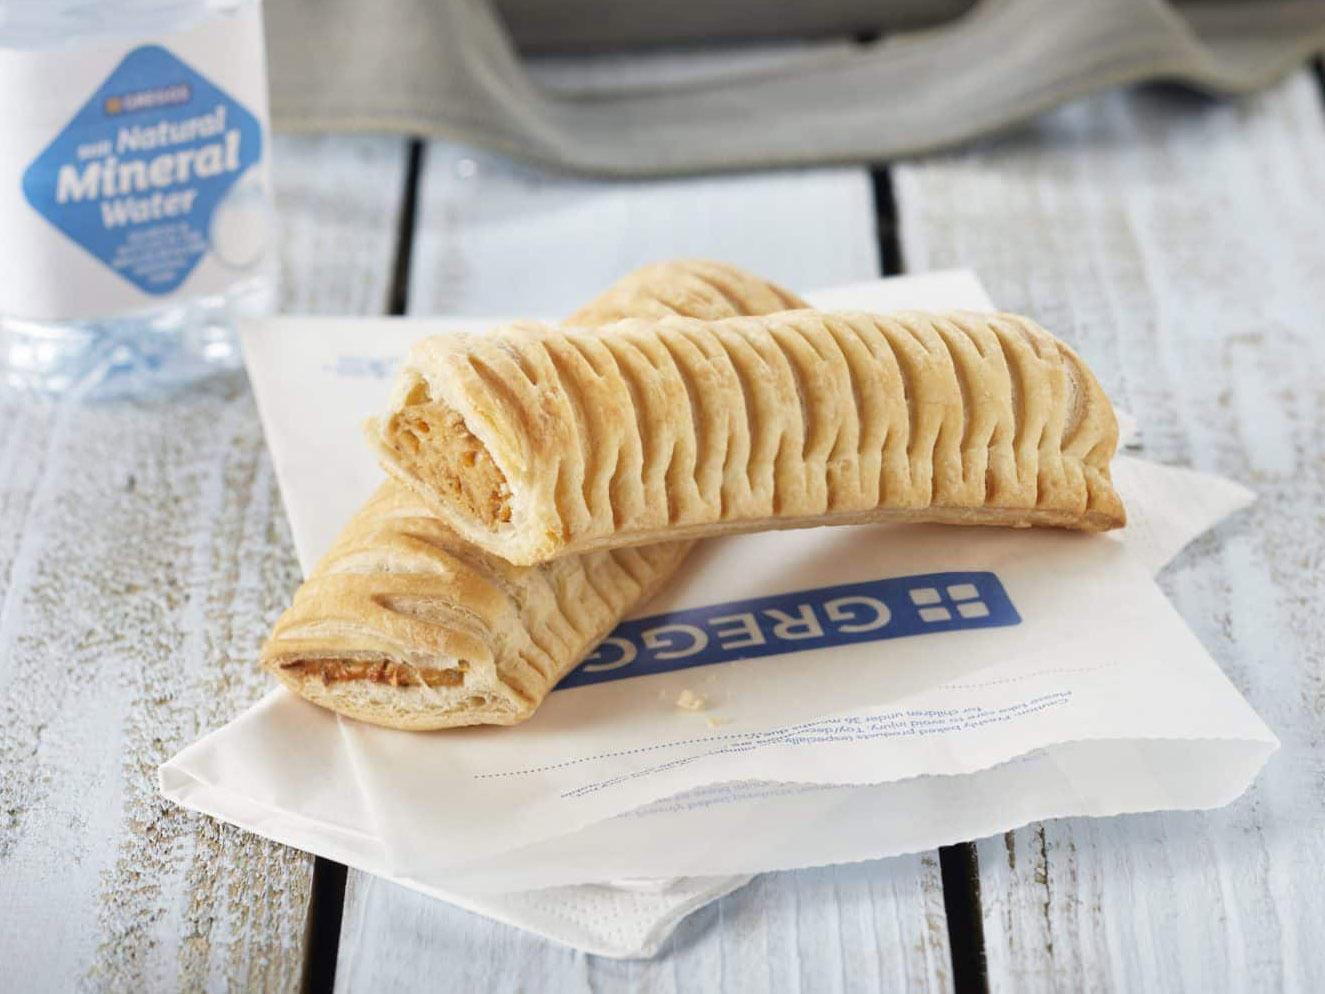 Greggs announces release of vegan sausage rolls nationwide and Twitter describes it as the 'best news ever'